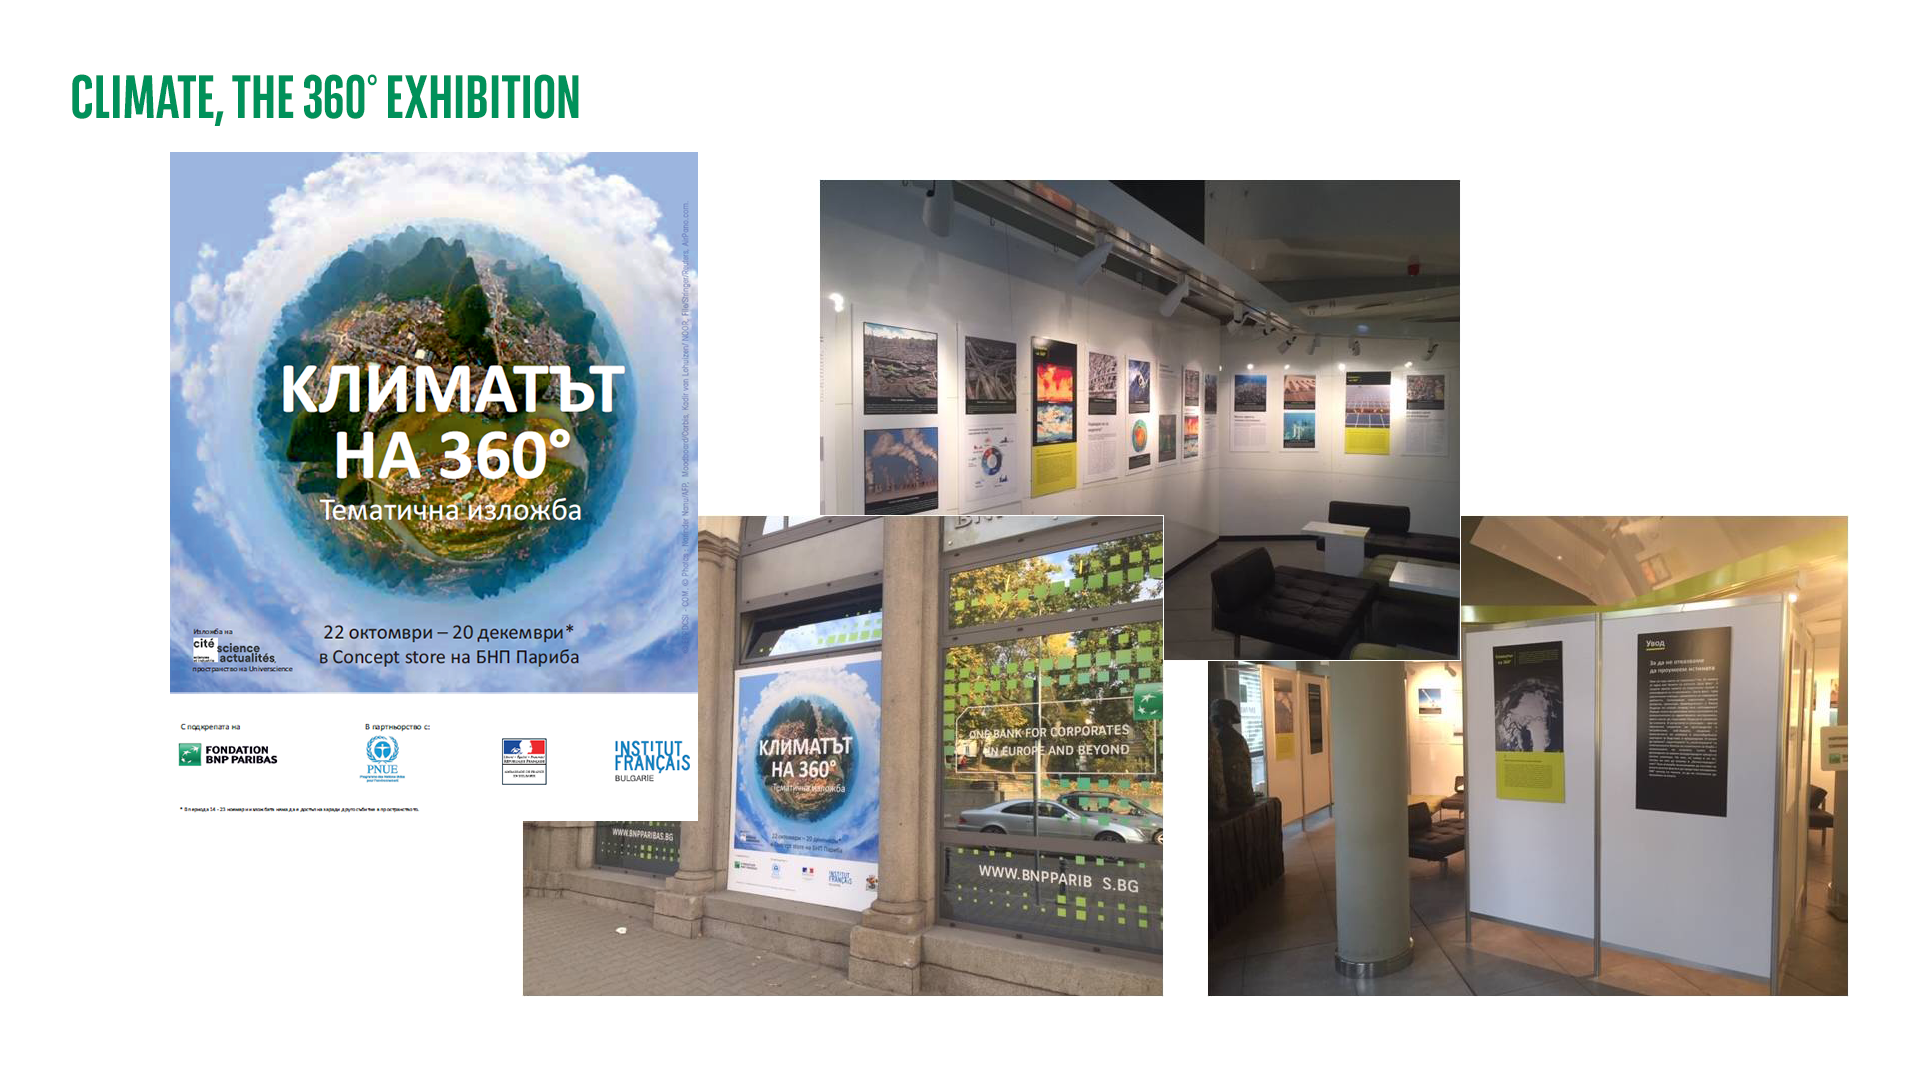 ClimateExhibition-Image1.png